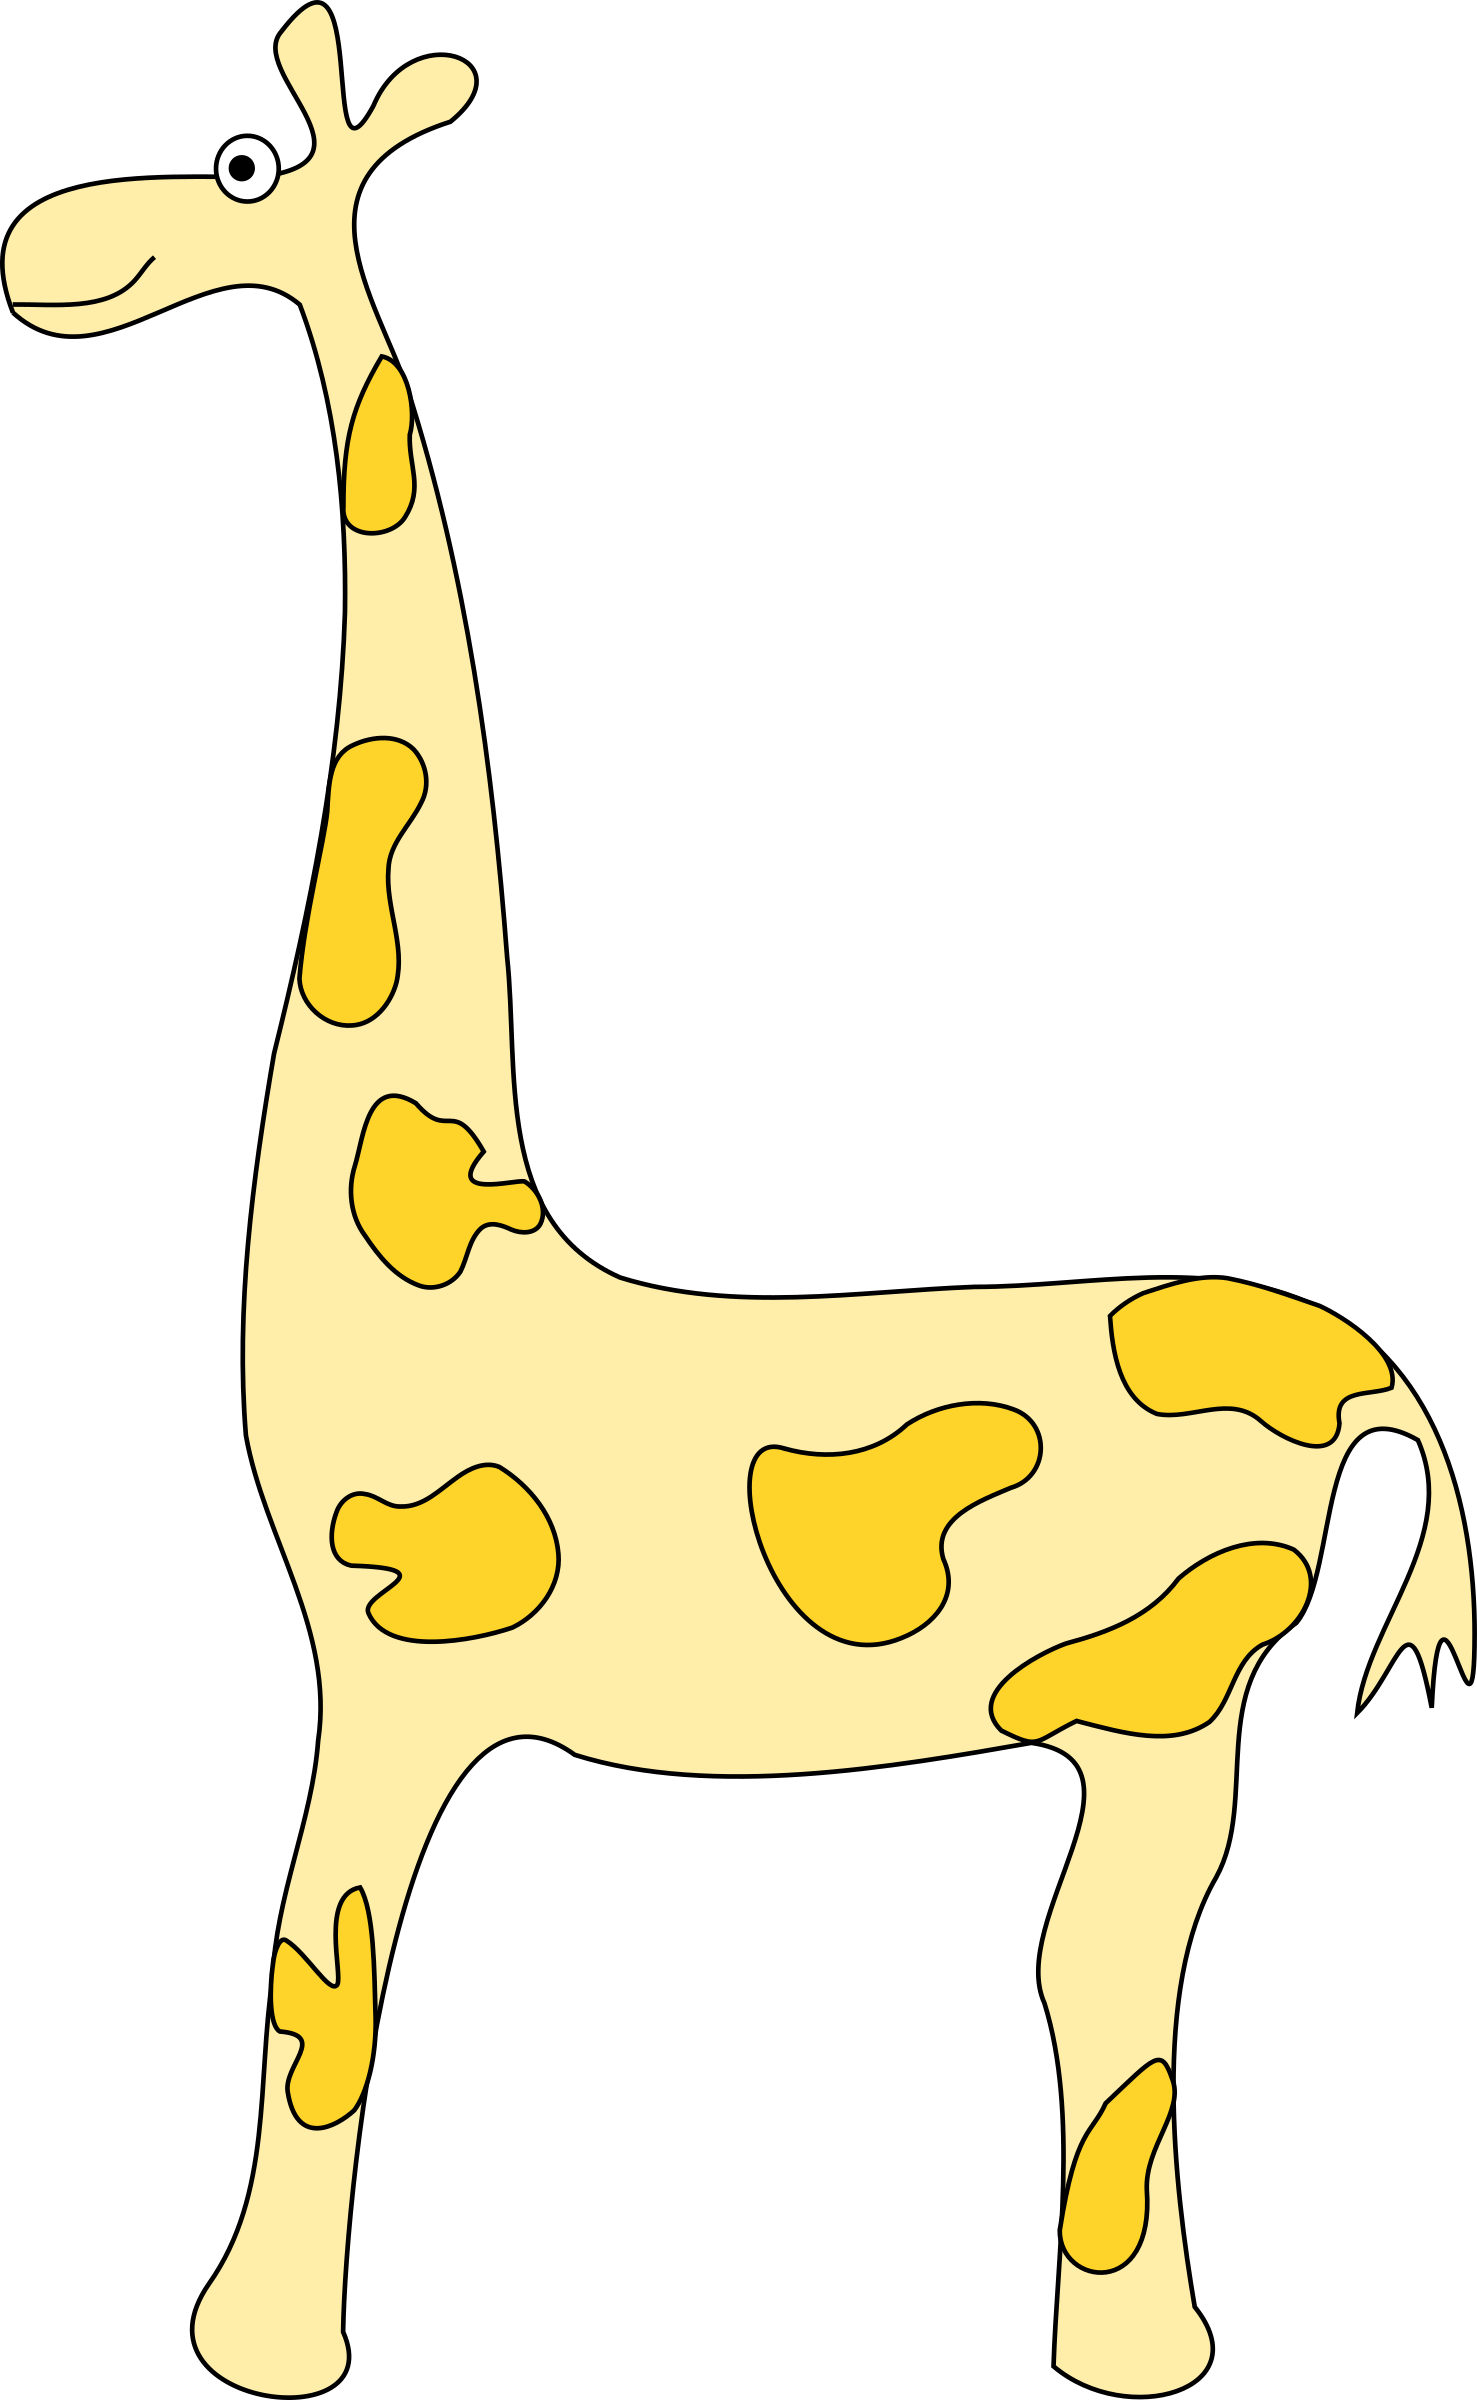 Girafe by cyrille